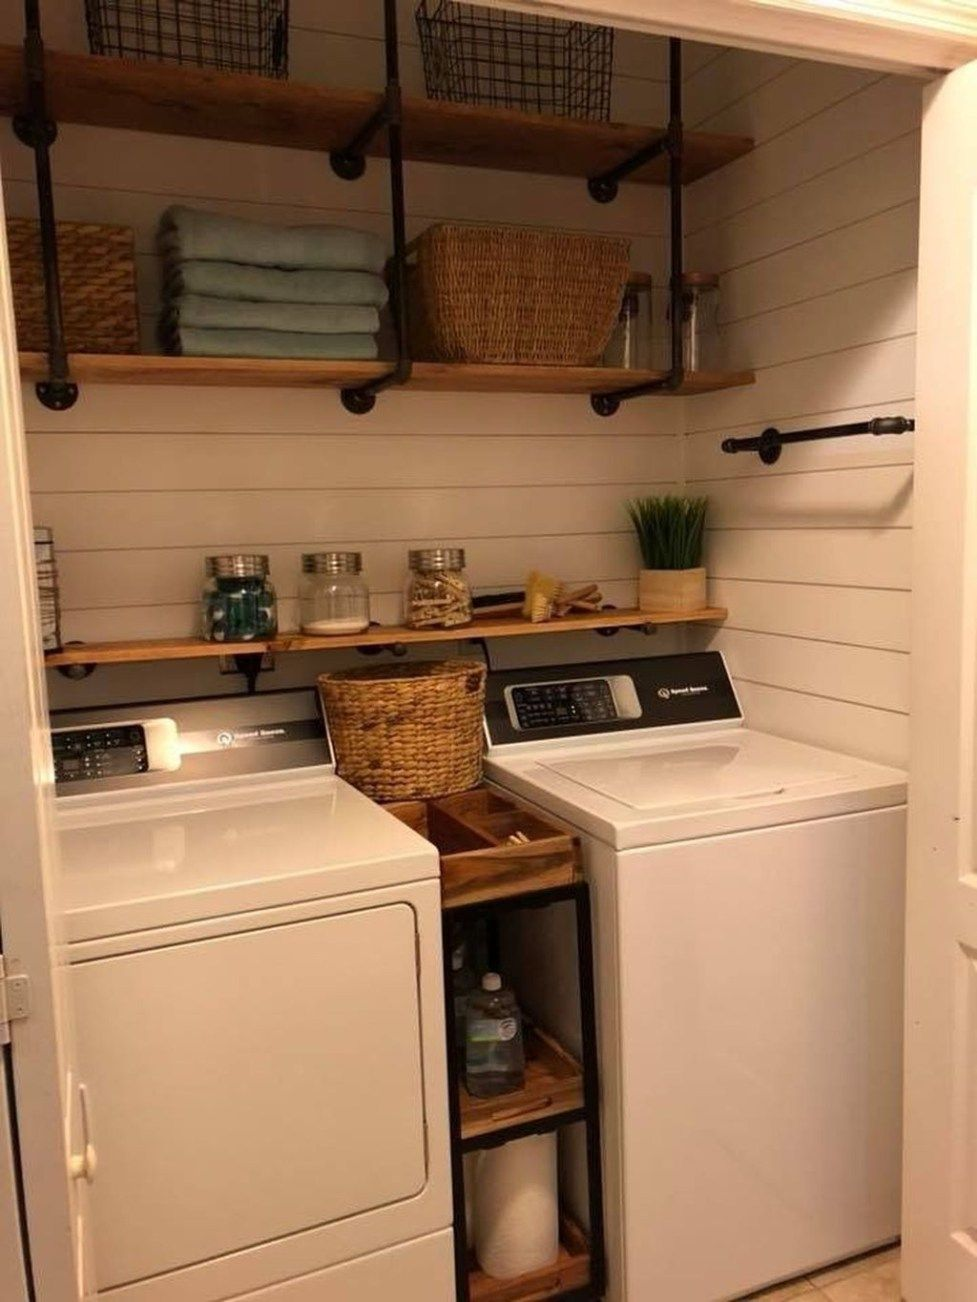 30+ Brilliant Small Laundry Room Decorating Ideas To Inspire You